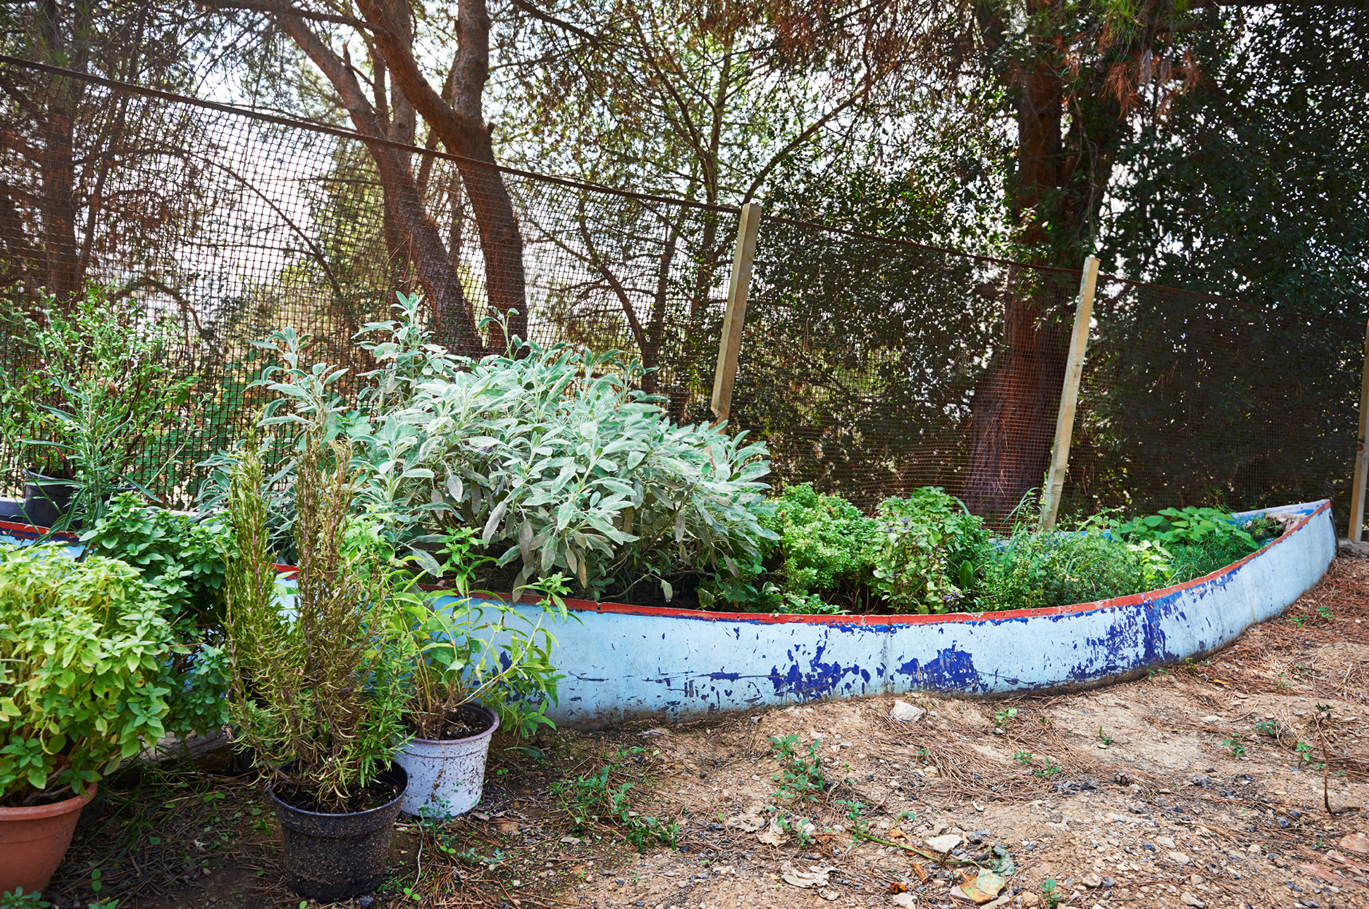 Herbs Ahoy. Corne & Lissa have a small garden in addition to a vast selection of herbs they grow in an old Canoe.